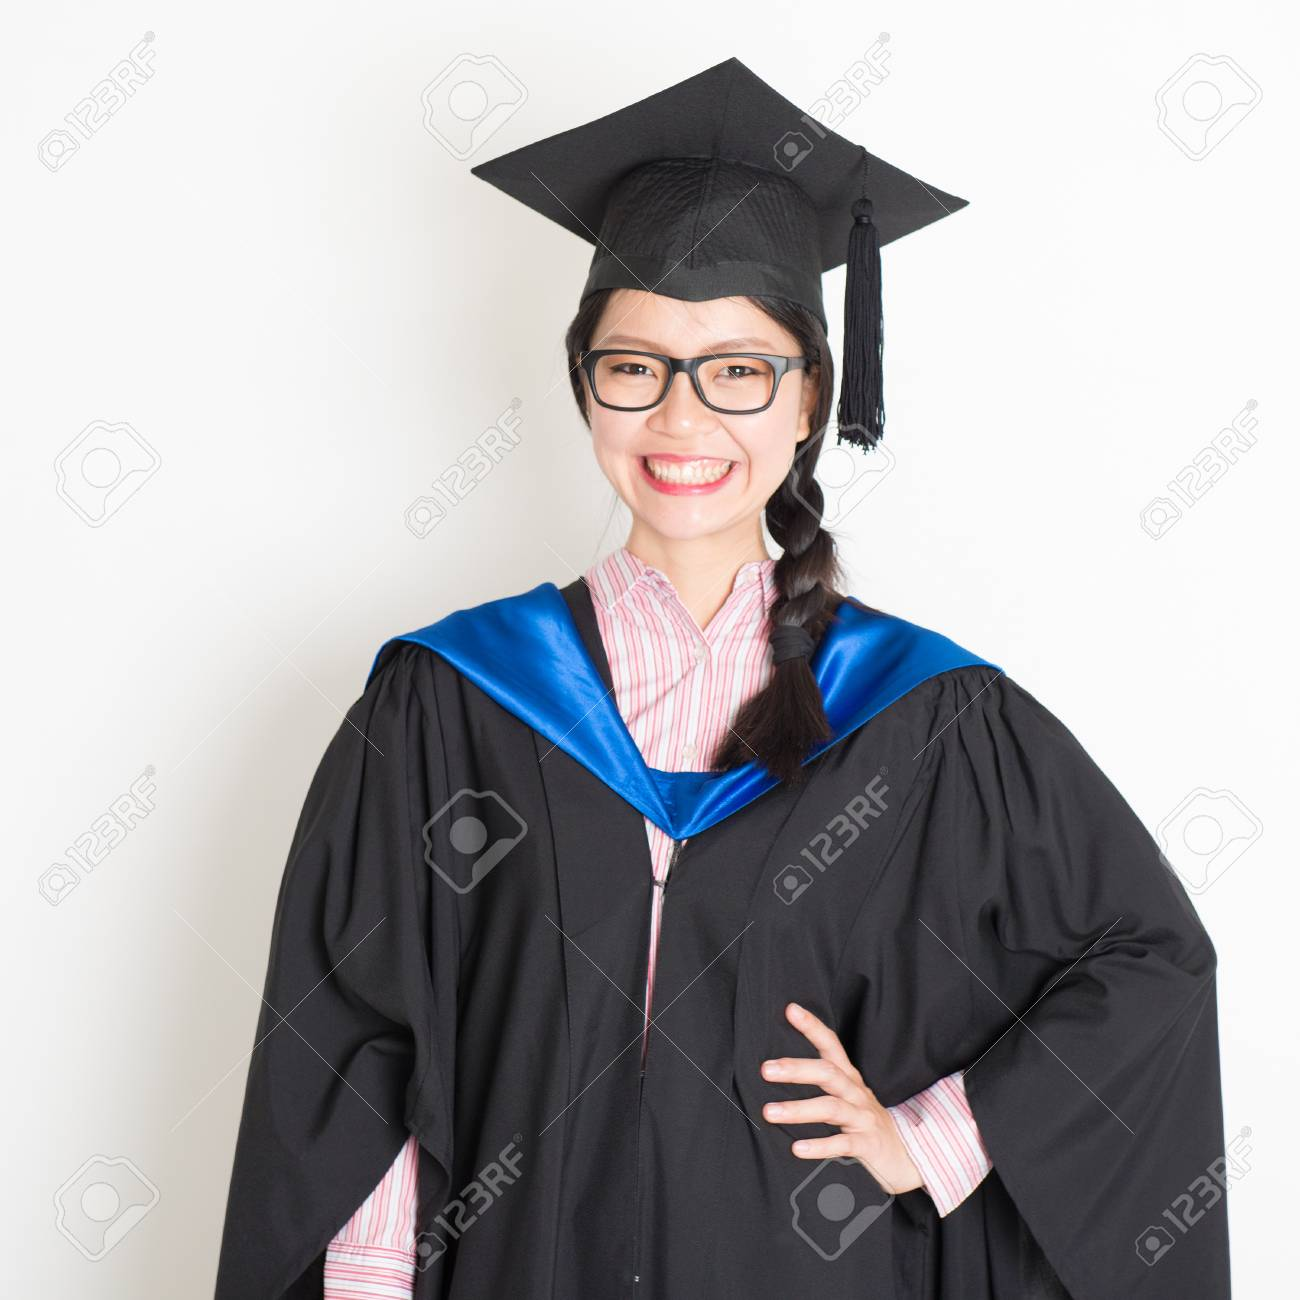 49e516df937 Stock Photo - University student in graduation gown and cap. Portrait of  east Asian female model standing on plain background.